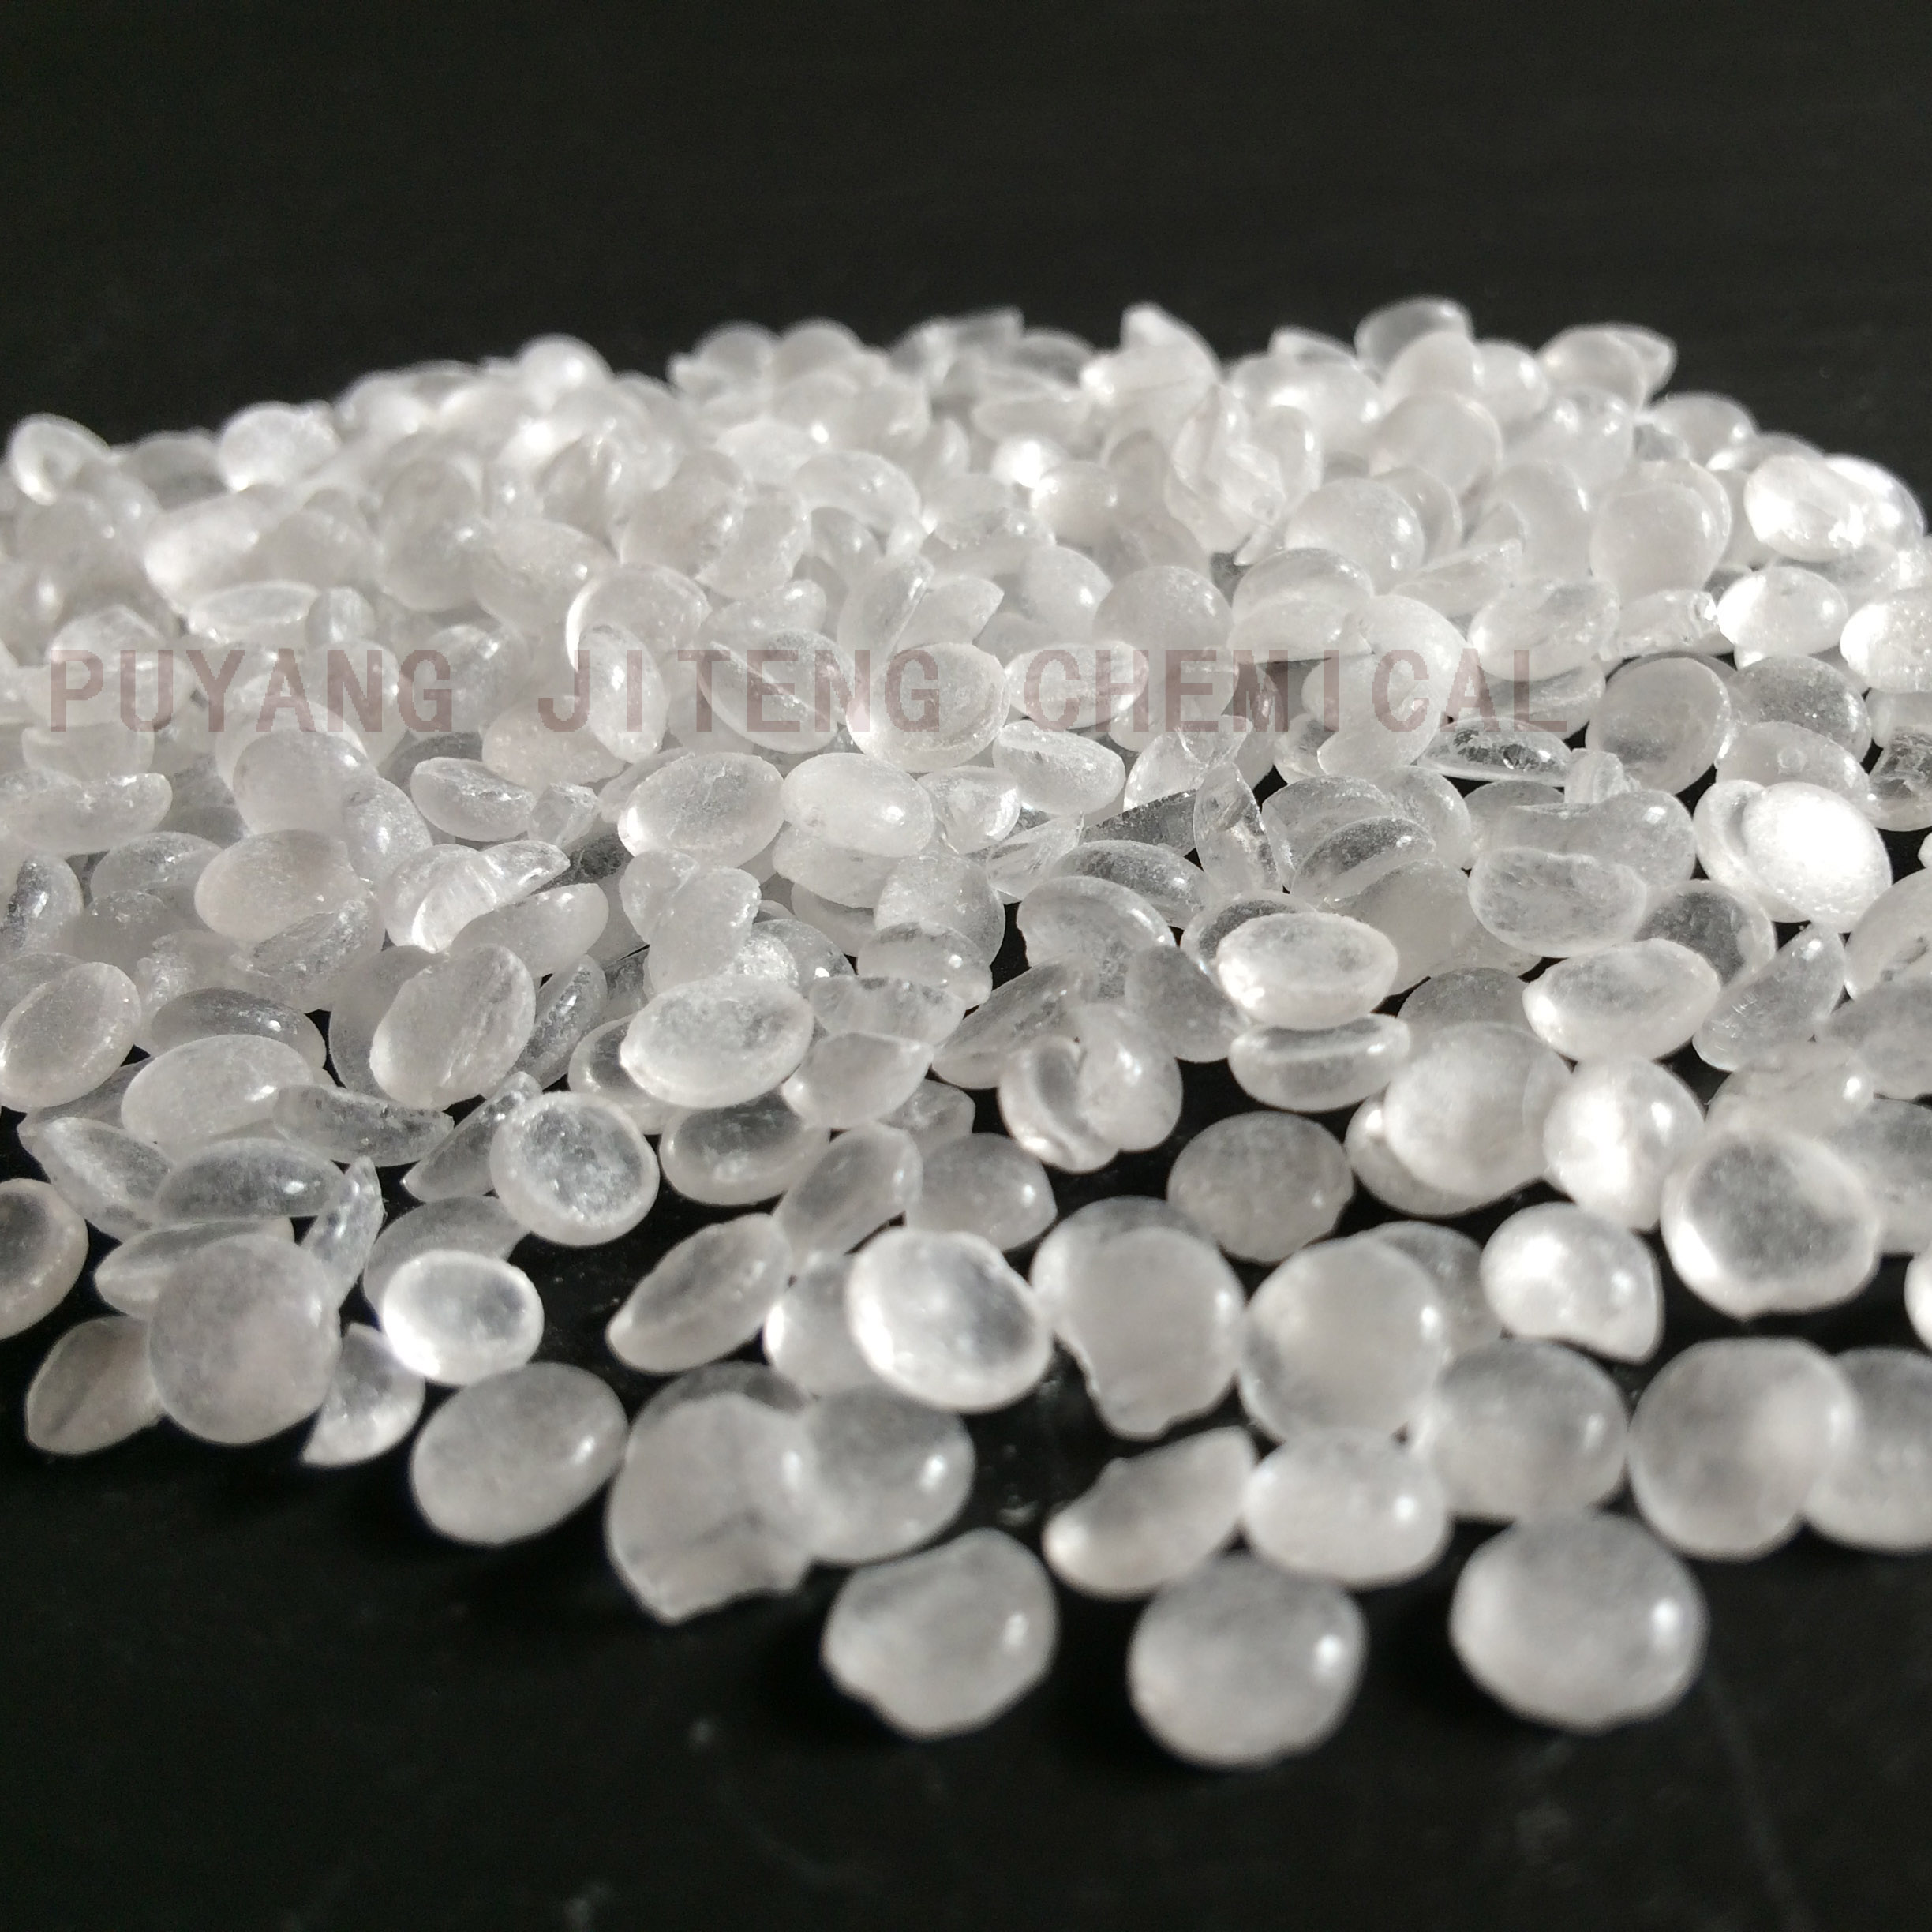 C9 hydrogenated hydrocarbon resin